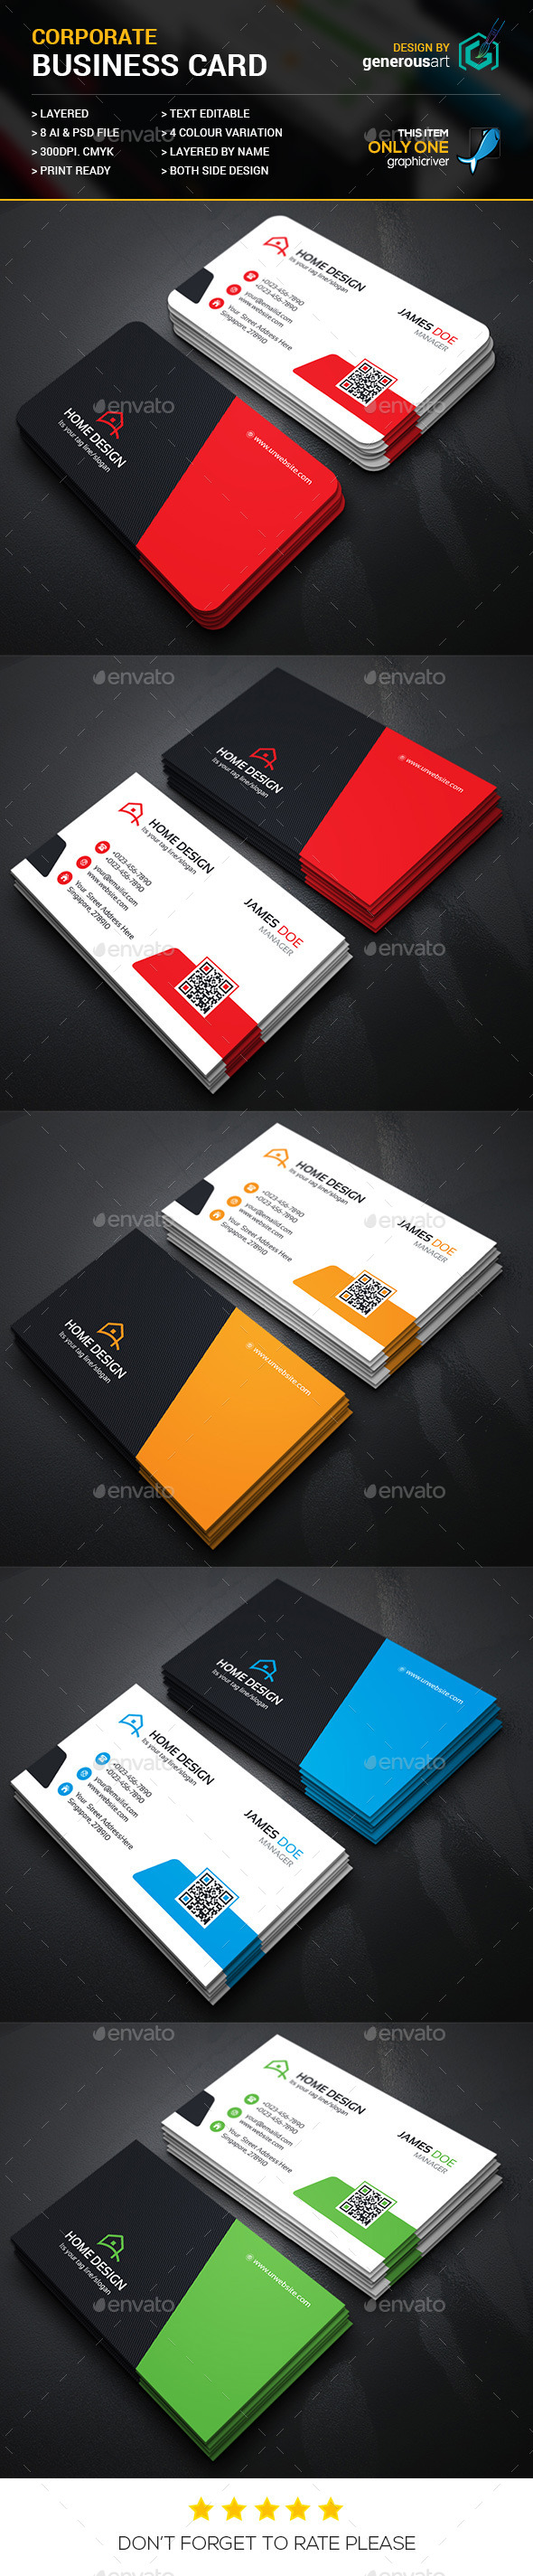 Home Design Business Card_2 - Corporate Business Cards